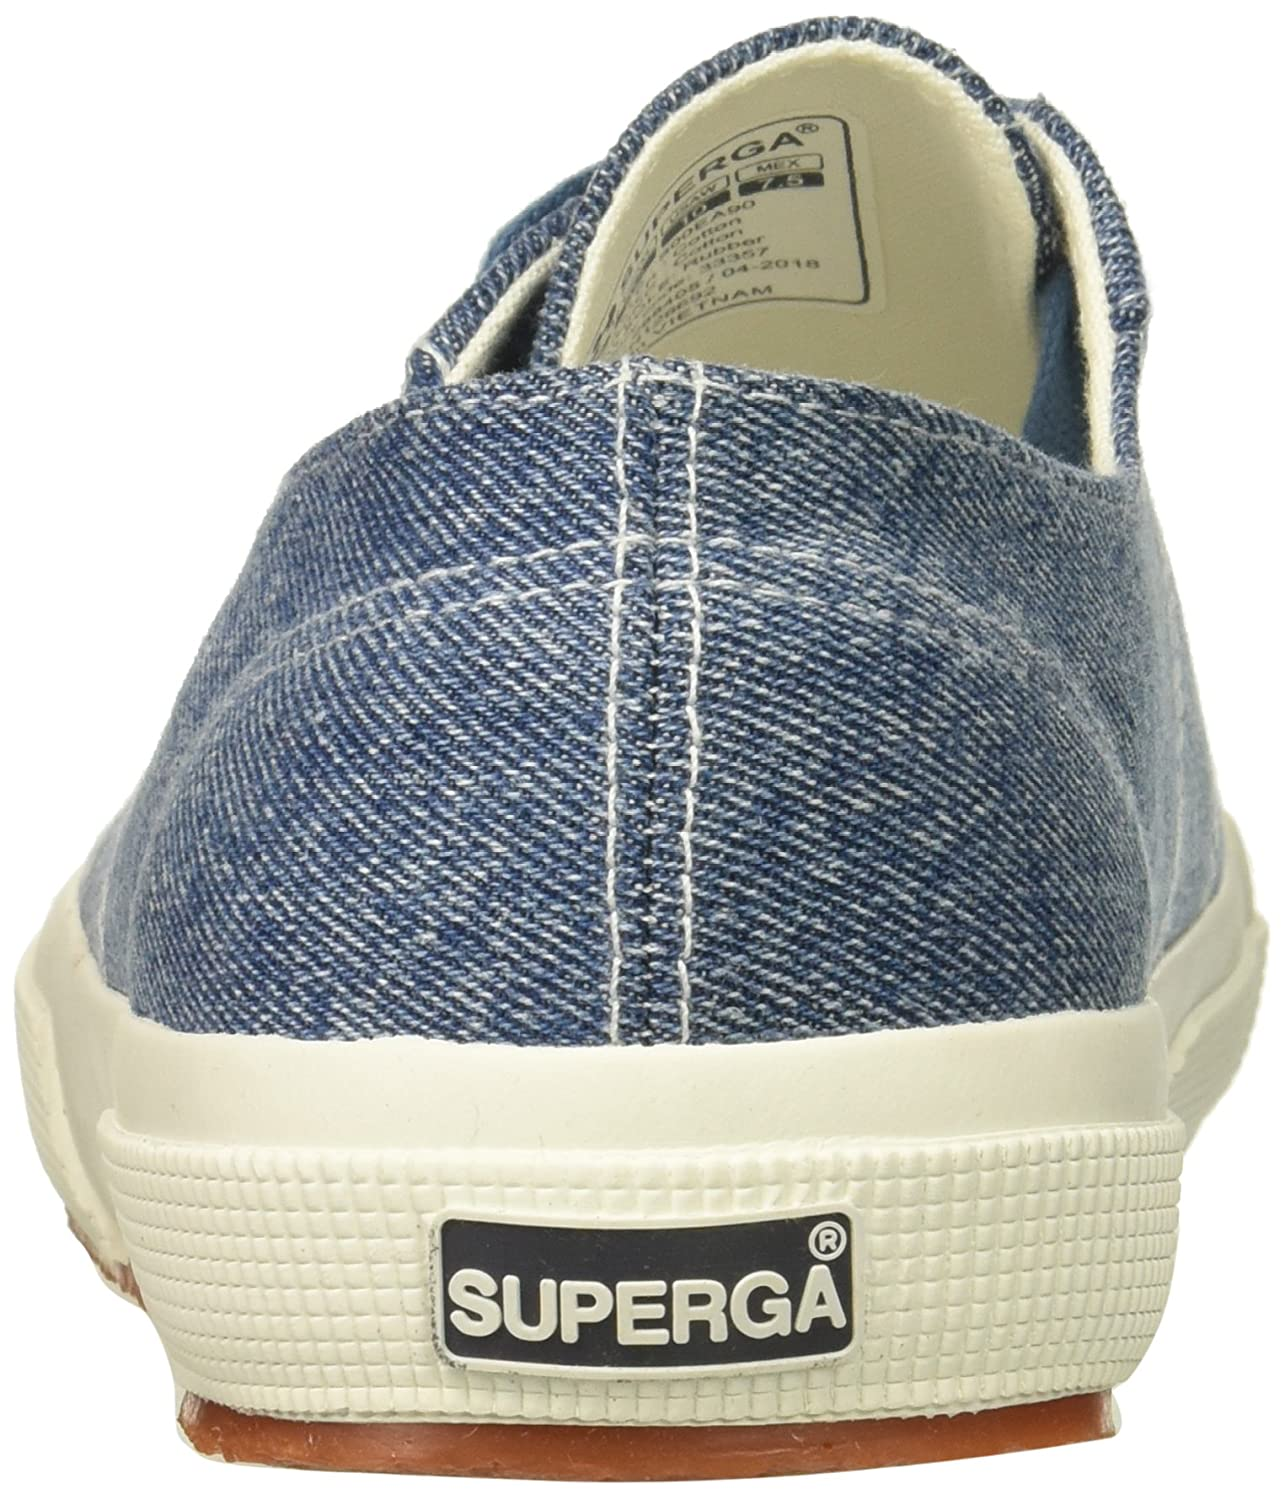 Superga Women's 2750 Coloreyedenimw Sneaker B078KDRYWC 39 M US|Denim Multi